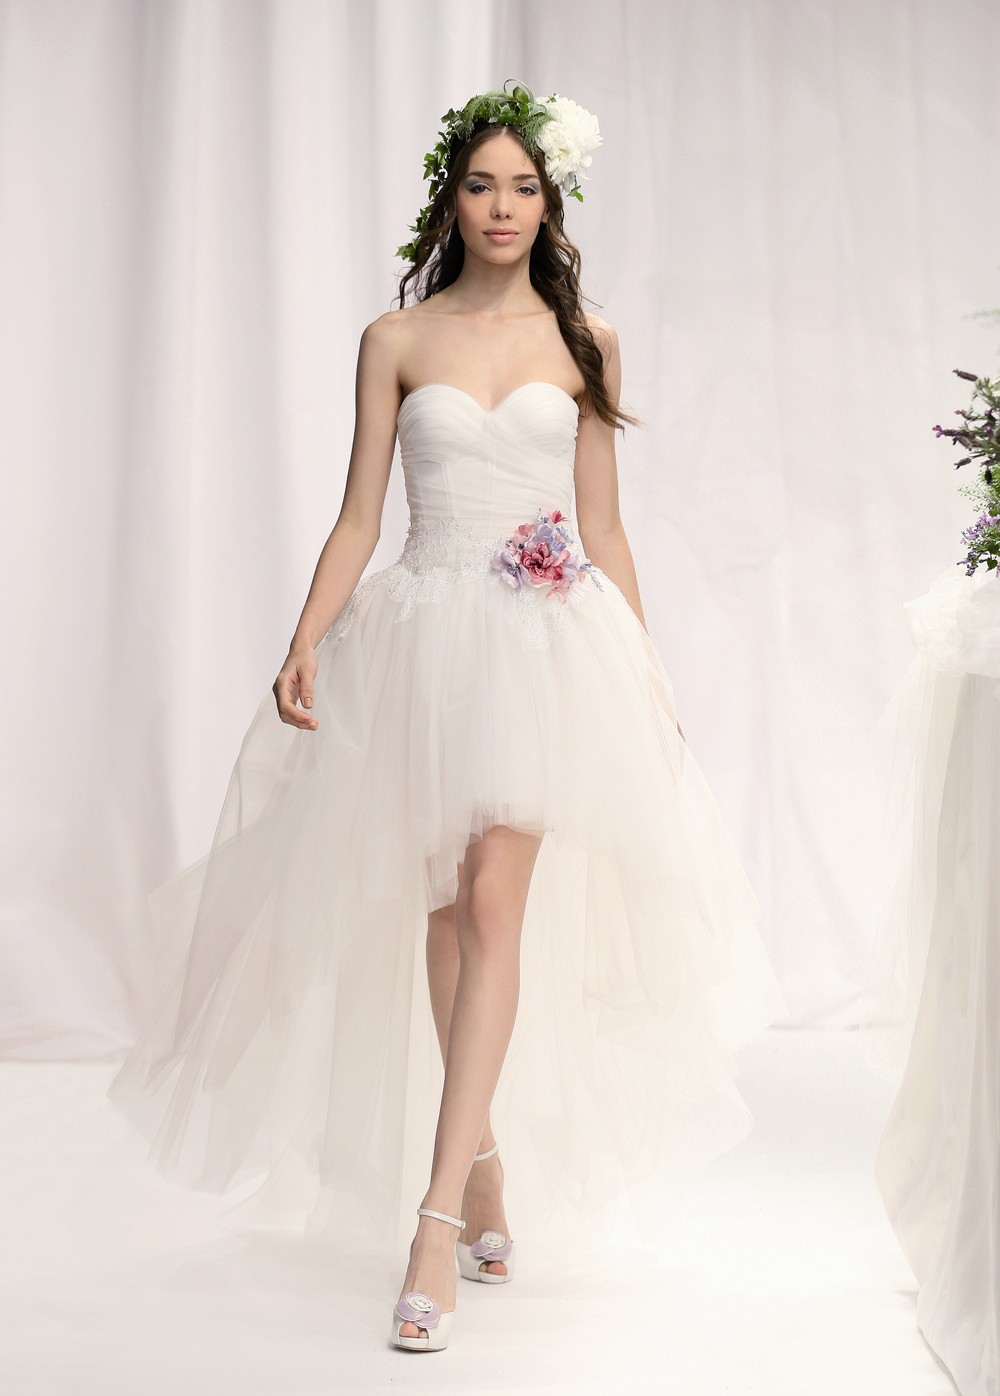 Most beautiful wedding dresses 2012 bridal wears for A pretty wedding dress